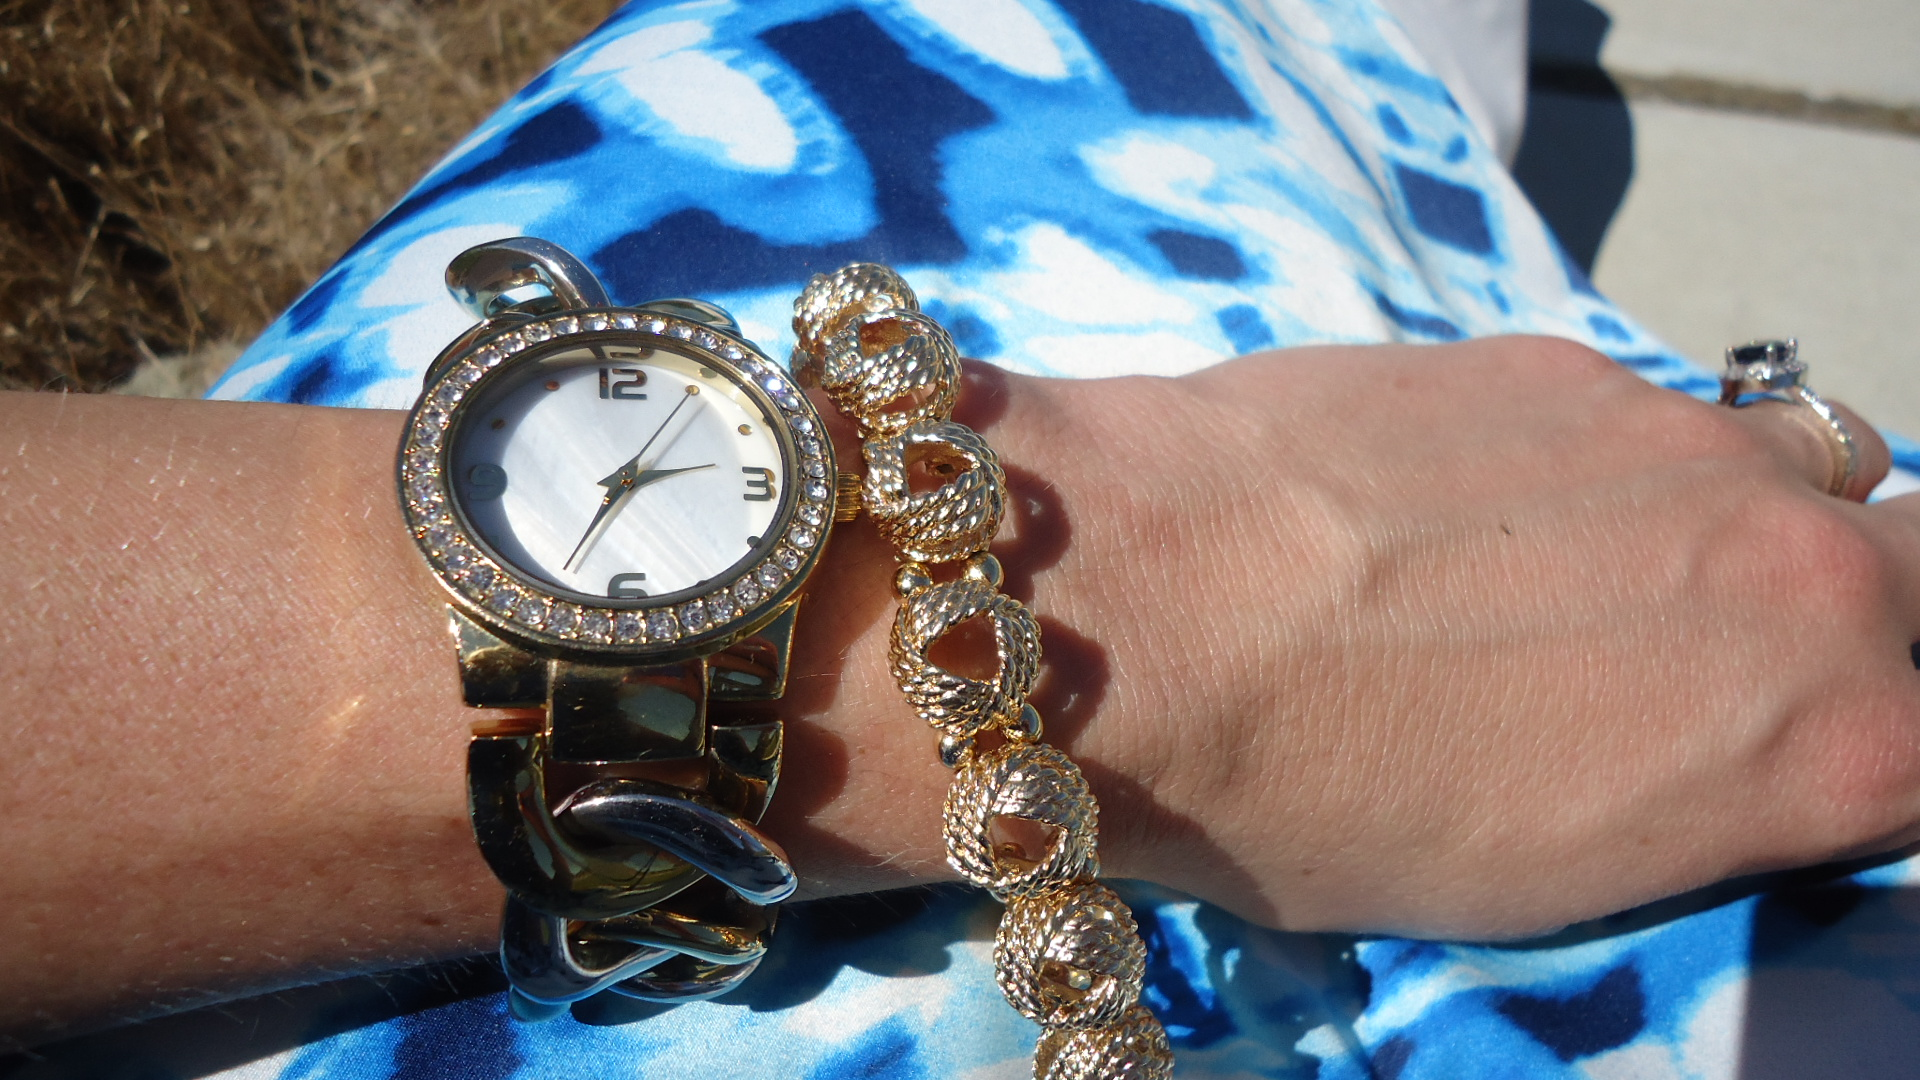 mark. All In Good Time Watch and Glimmer and Gleam Bracelet Set